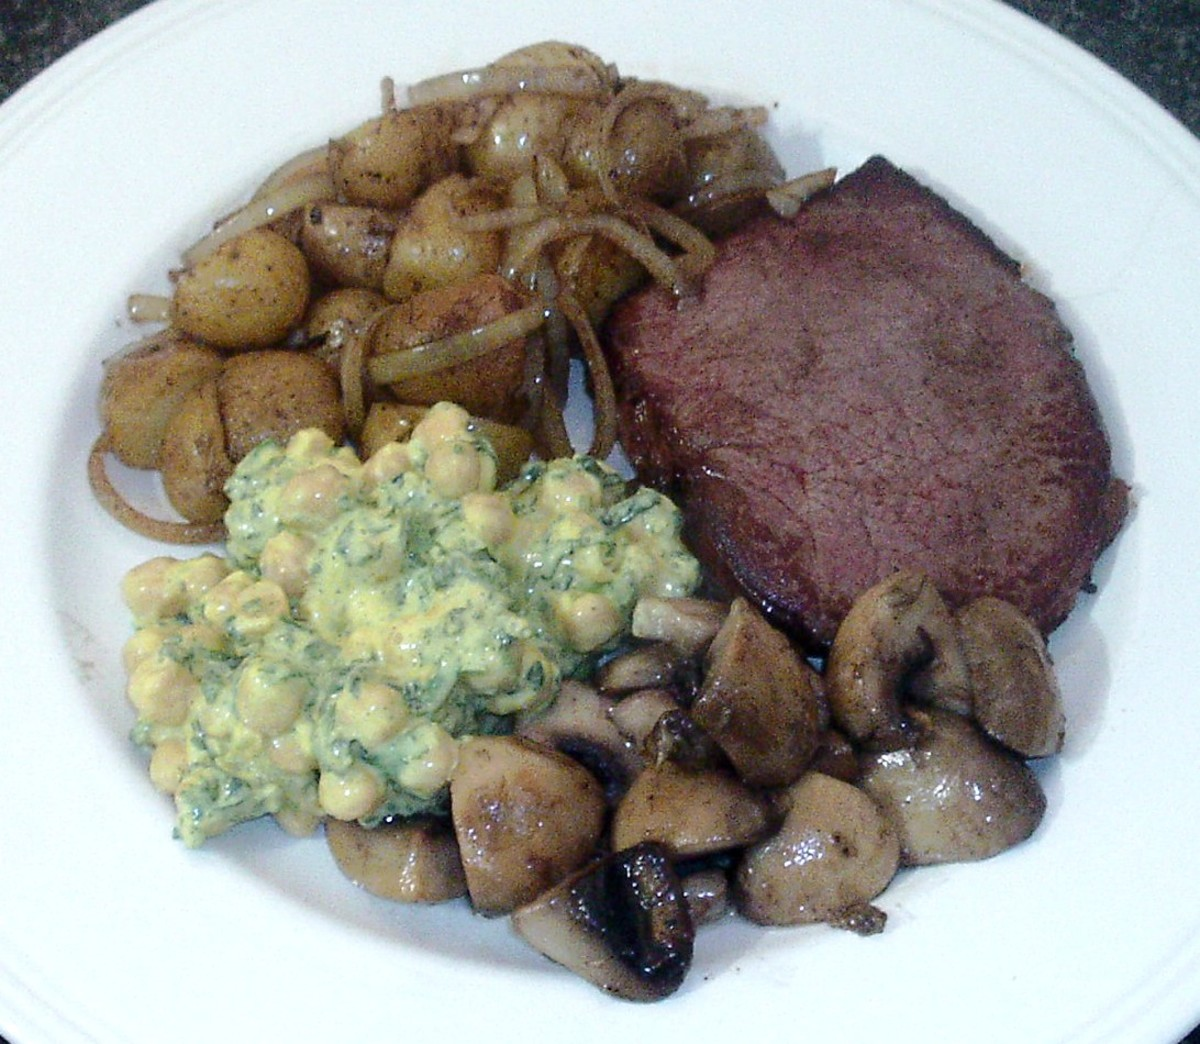 Steak and accompaniments are arranged on serving plate